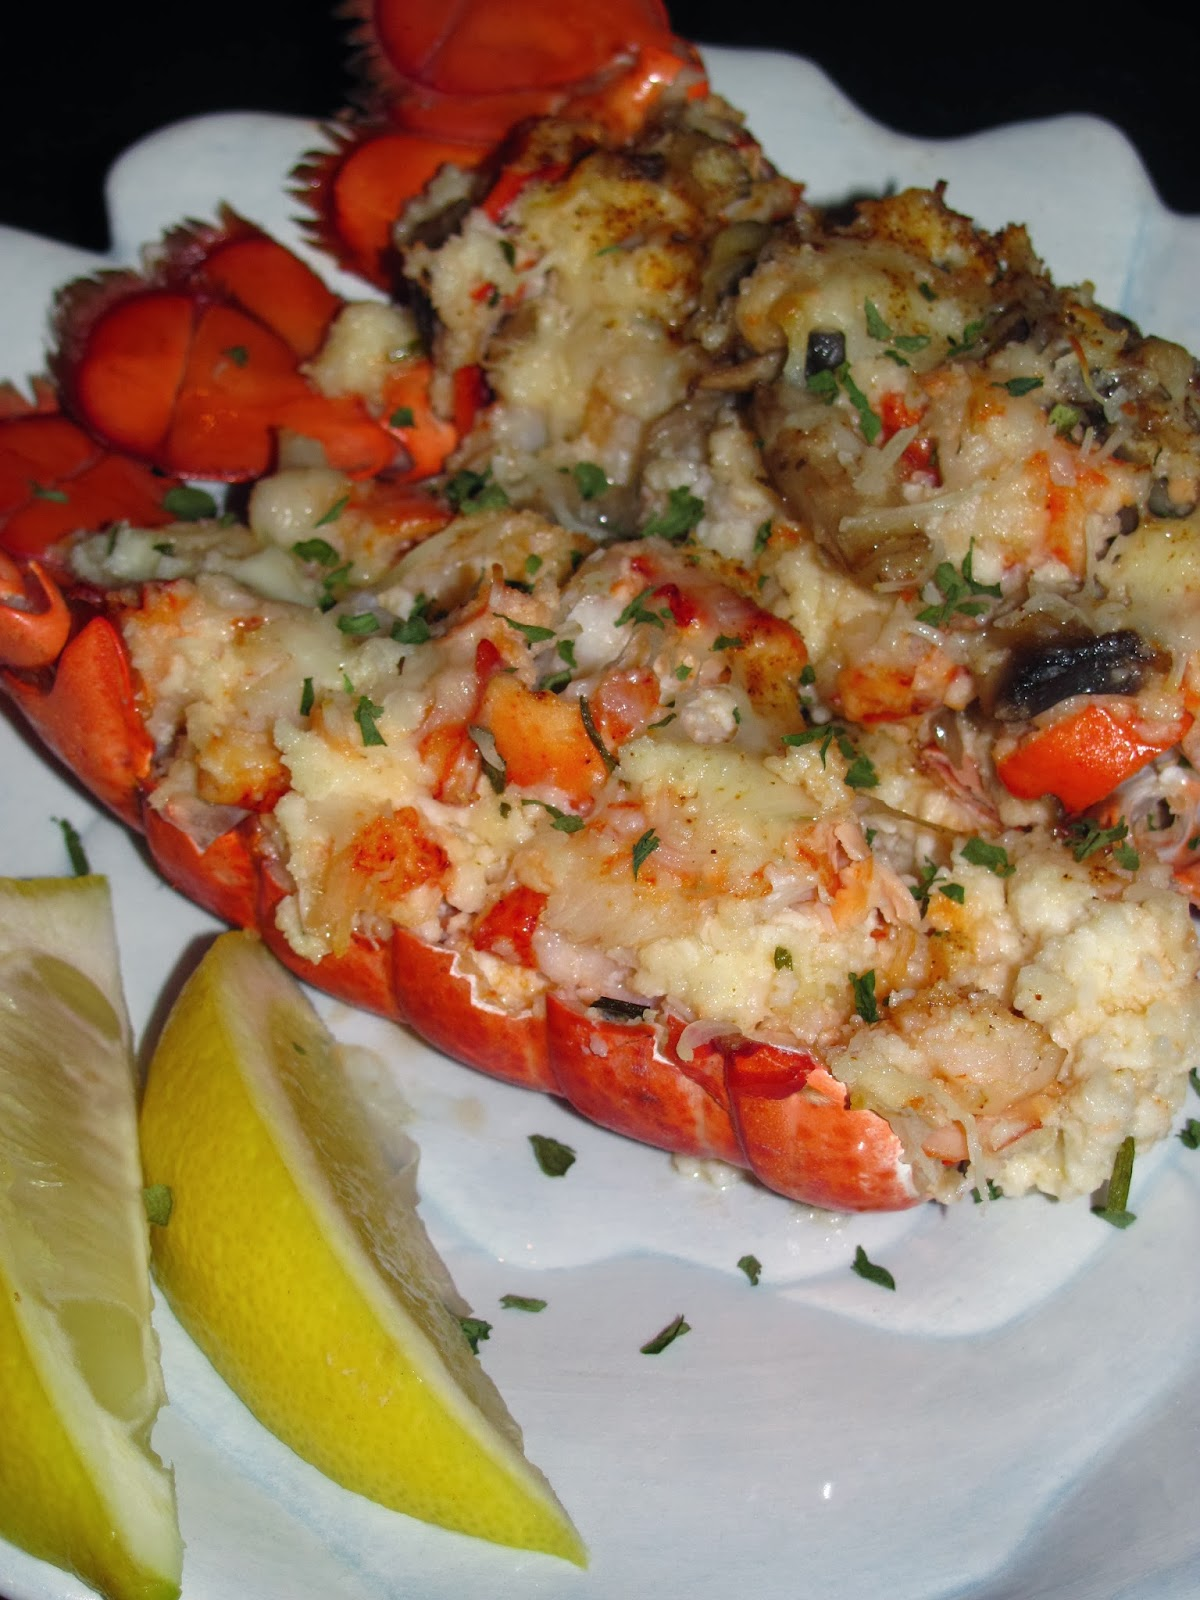 For the Love of Food: Charlie's Birthday Lobster Thermidor